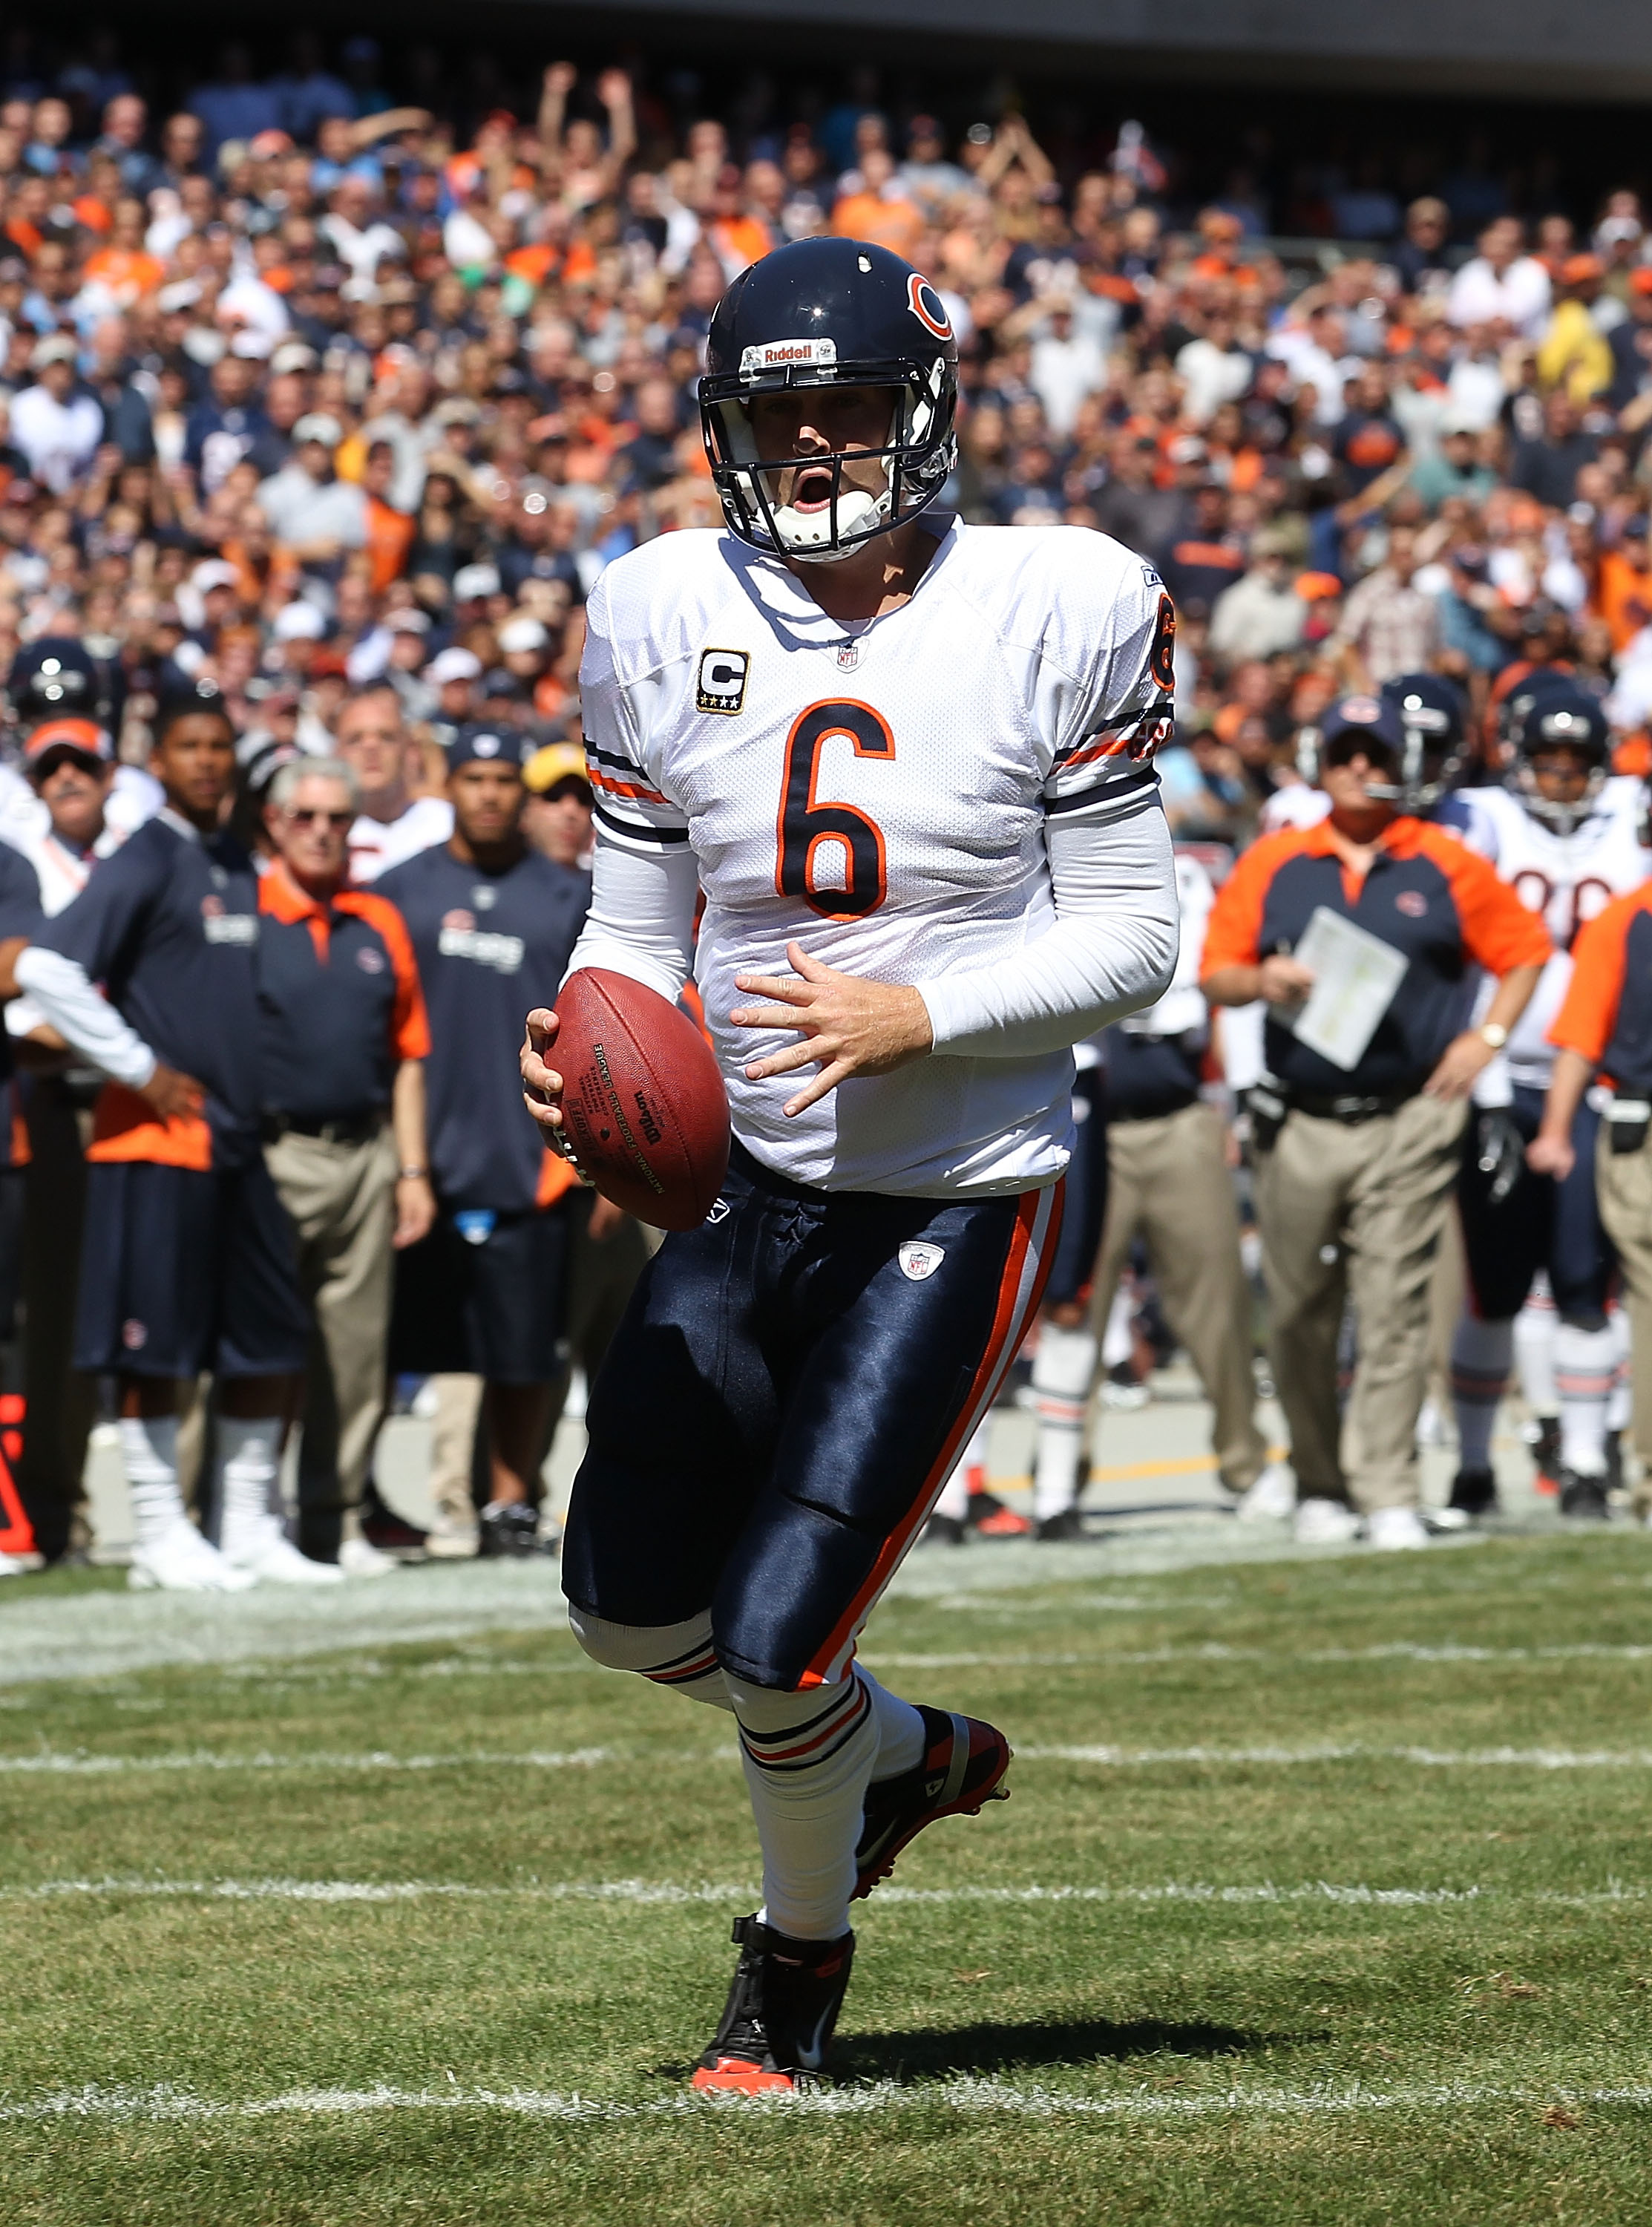 CHICAGO - SEPTEMBER 12: Jay Cutler #6 of the Chicago Bears runs toward the end zone against the Detroit Lions during the NFL season opening game at Soldier Field on September 12, 2010 in Chicago, Illinois. The Bears defeated the Lions 19-14. (Photo by Jon